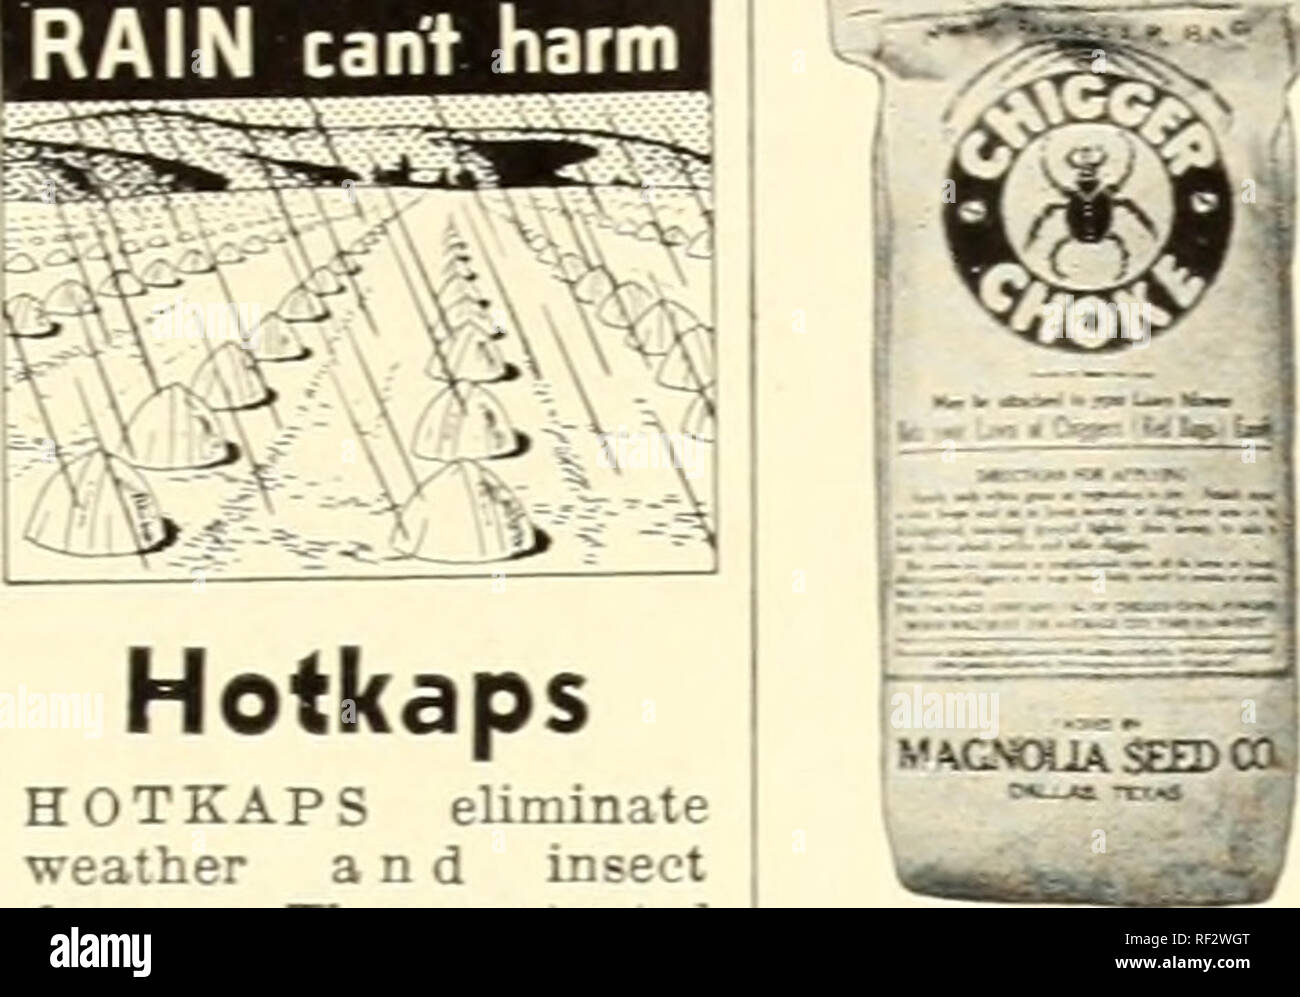 . Catalog 1944 : magnolia seeds are good seeds.. Seeds Catalogs; Vegetables Catalogs; Plants Catalogs; Flowers Catalogs; Gardening Equipment and supplies Catalogs. PLANT PROTECTORS—INSECTICIDES AND PEST KILLERS FROST can't hurt I RAIN cant harm Urn IN5ECTG cant touch ft I. Hotkaps HOTKAPS eliminate weather and insect damage. These patented wax paper cones form miniature hot houses over each plant, pro- mote sturdy rrowth and bring- crops to ma- turity two to three weeks earlier, thus get- ting premium prices. Inexpensive to buy. Easy to set out. One man can place 2000 or more per day. Prices W - Stock Image